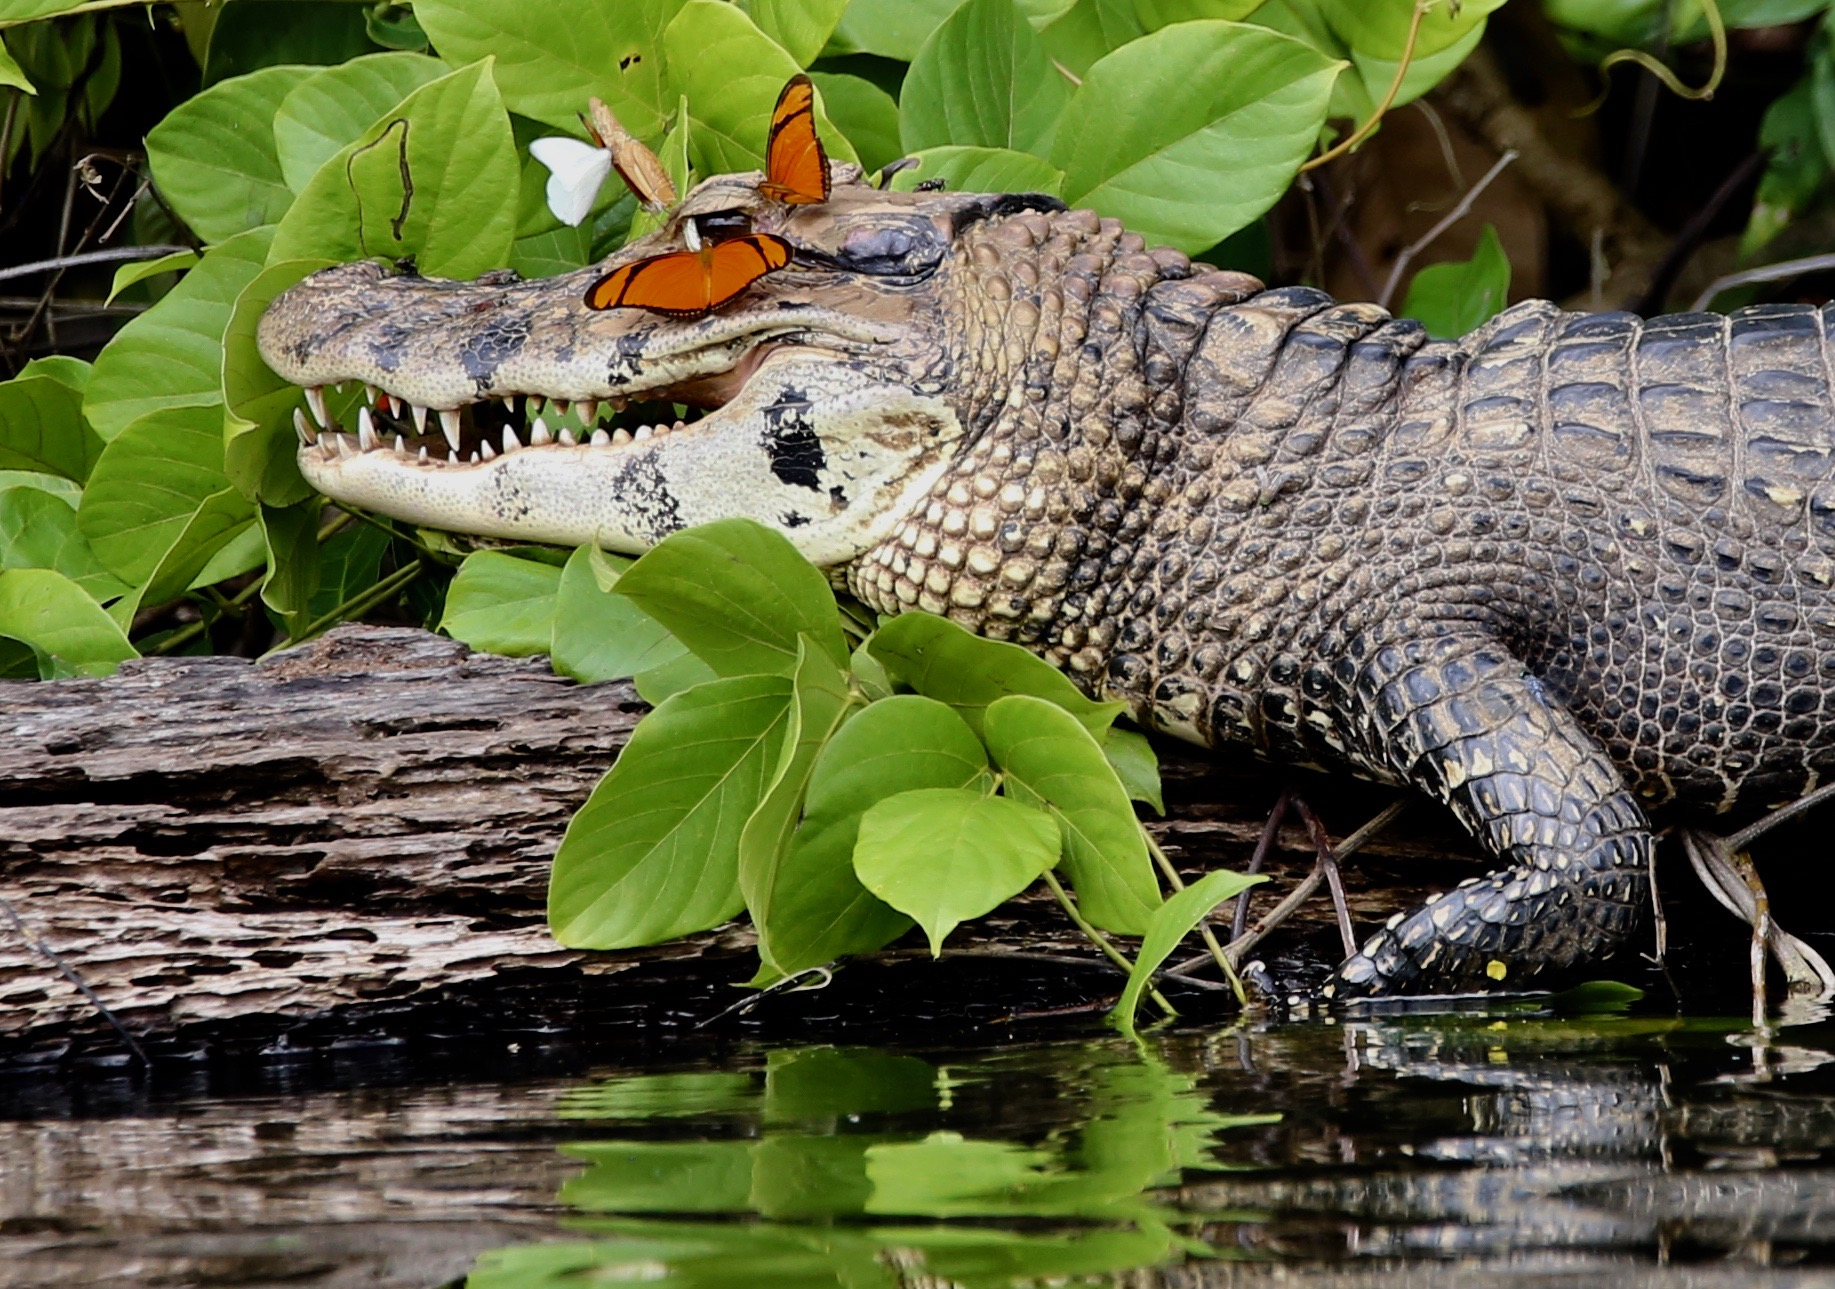 A black caiman proves a safe place for butterflies to alight.